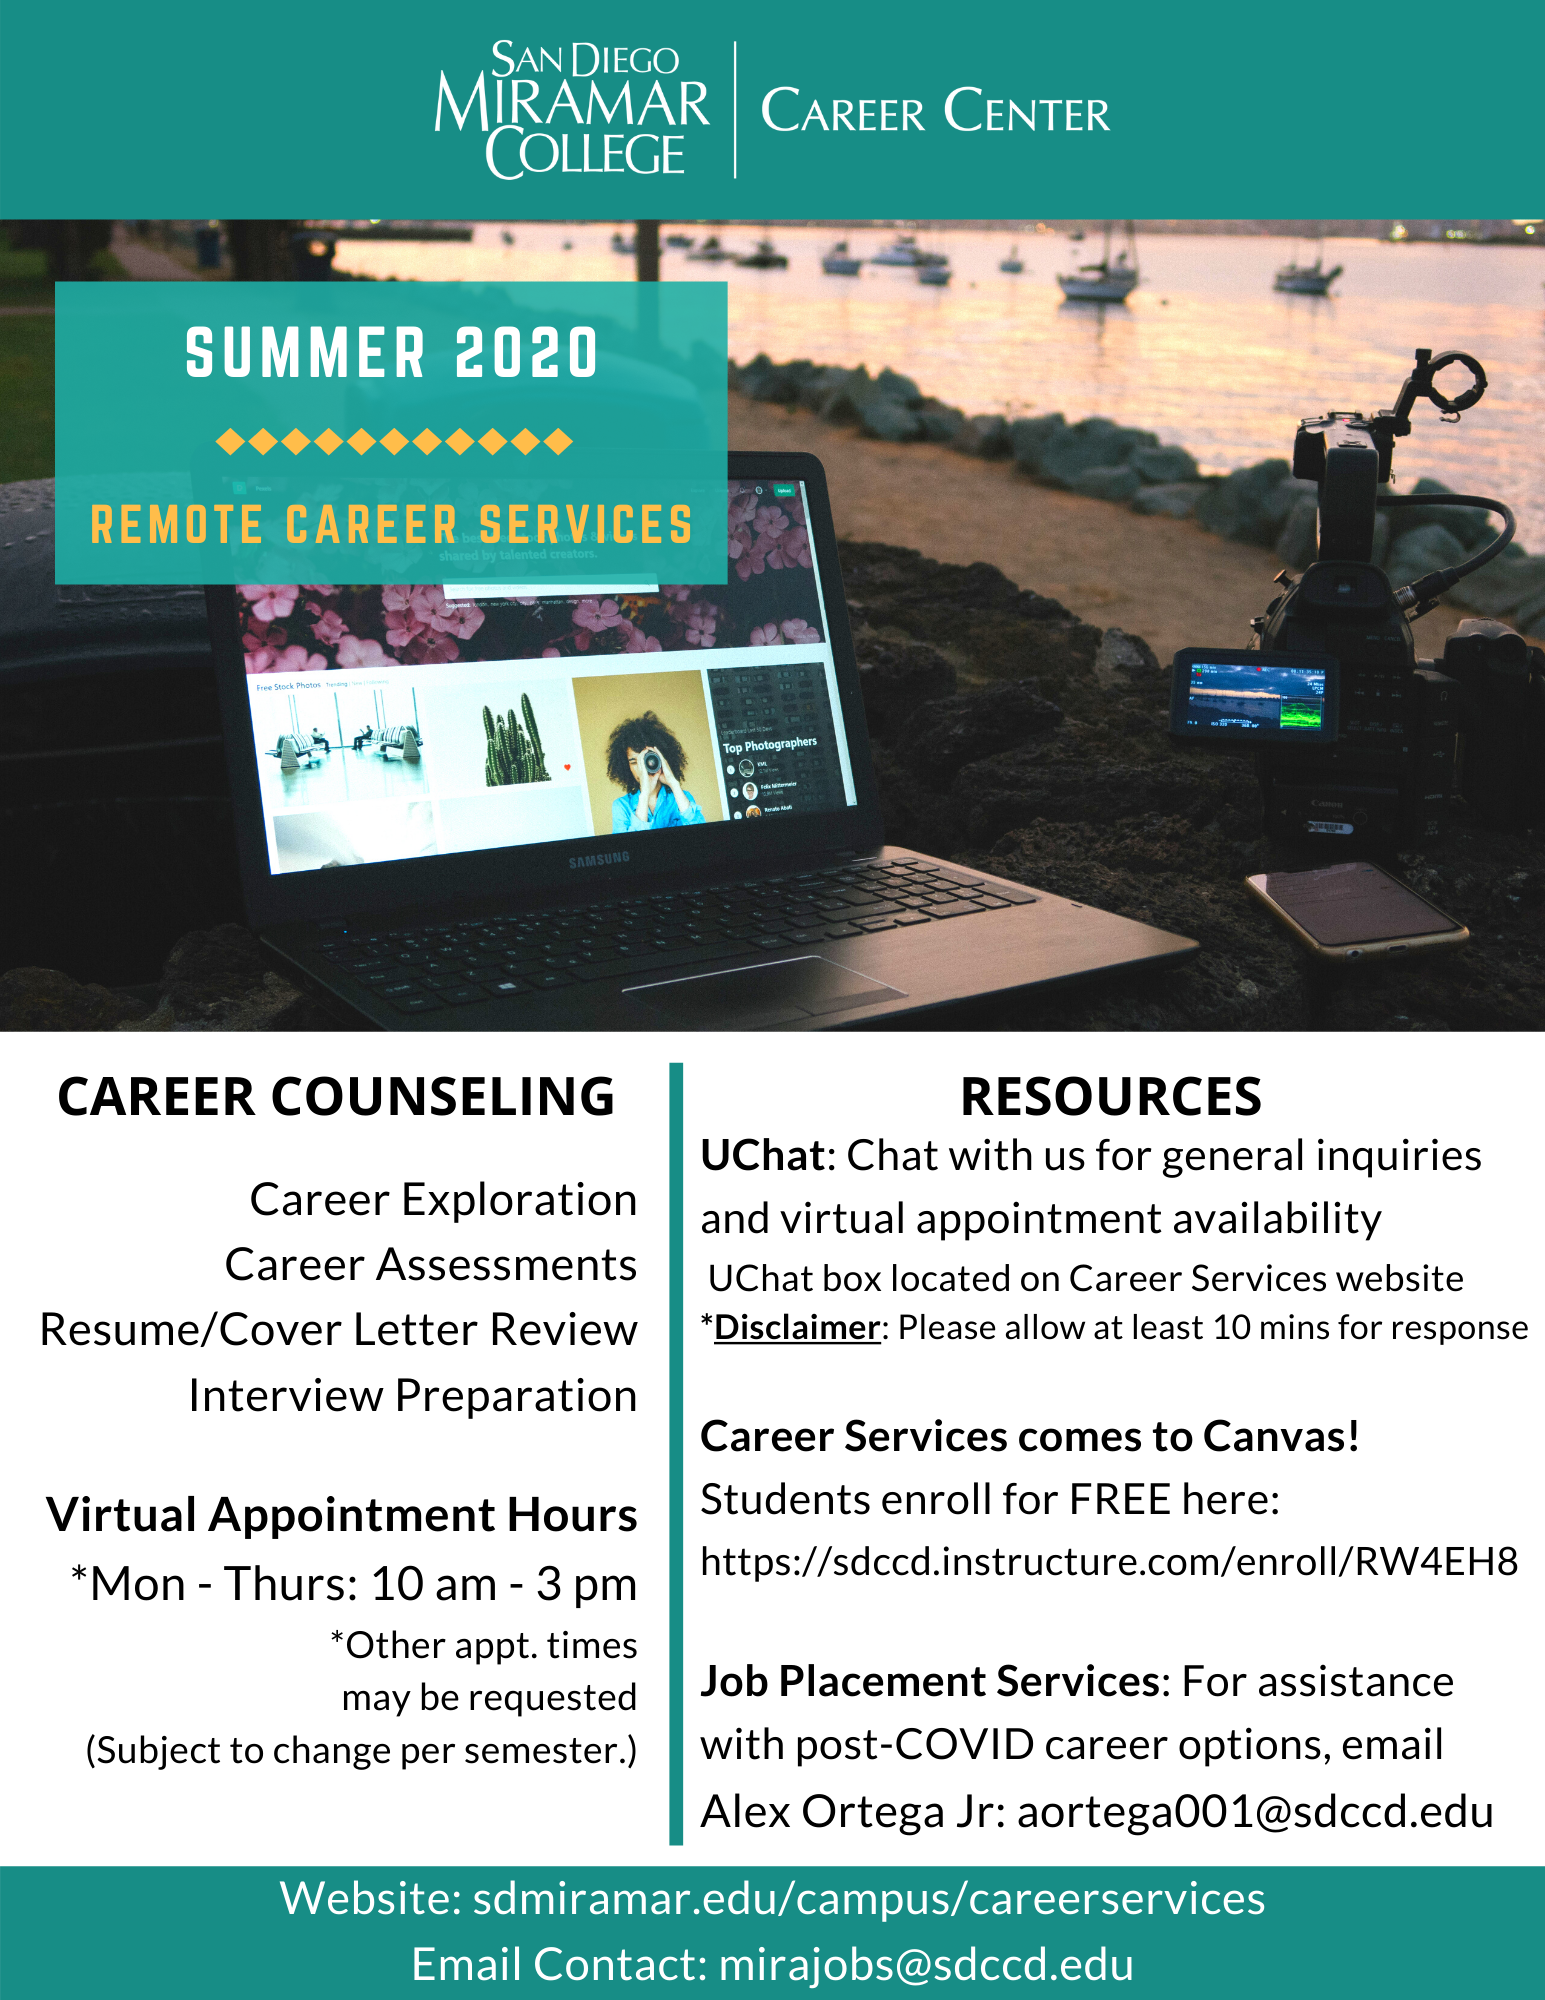 Remote Career Services Summer 2020 Flyer. Please email mirajobs@sdccd.edu for more details about career counseling, virtual appointment hours, online resources, and office contact information.